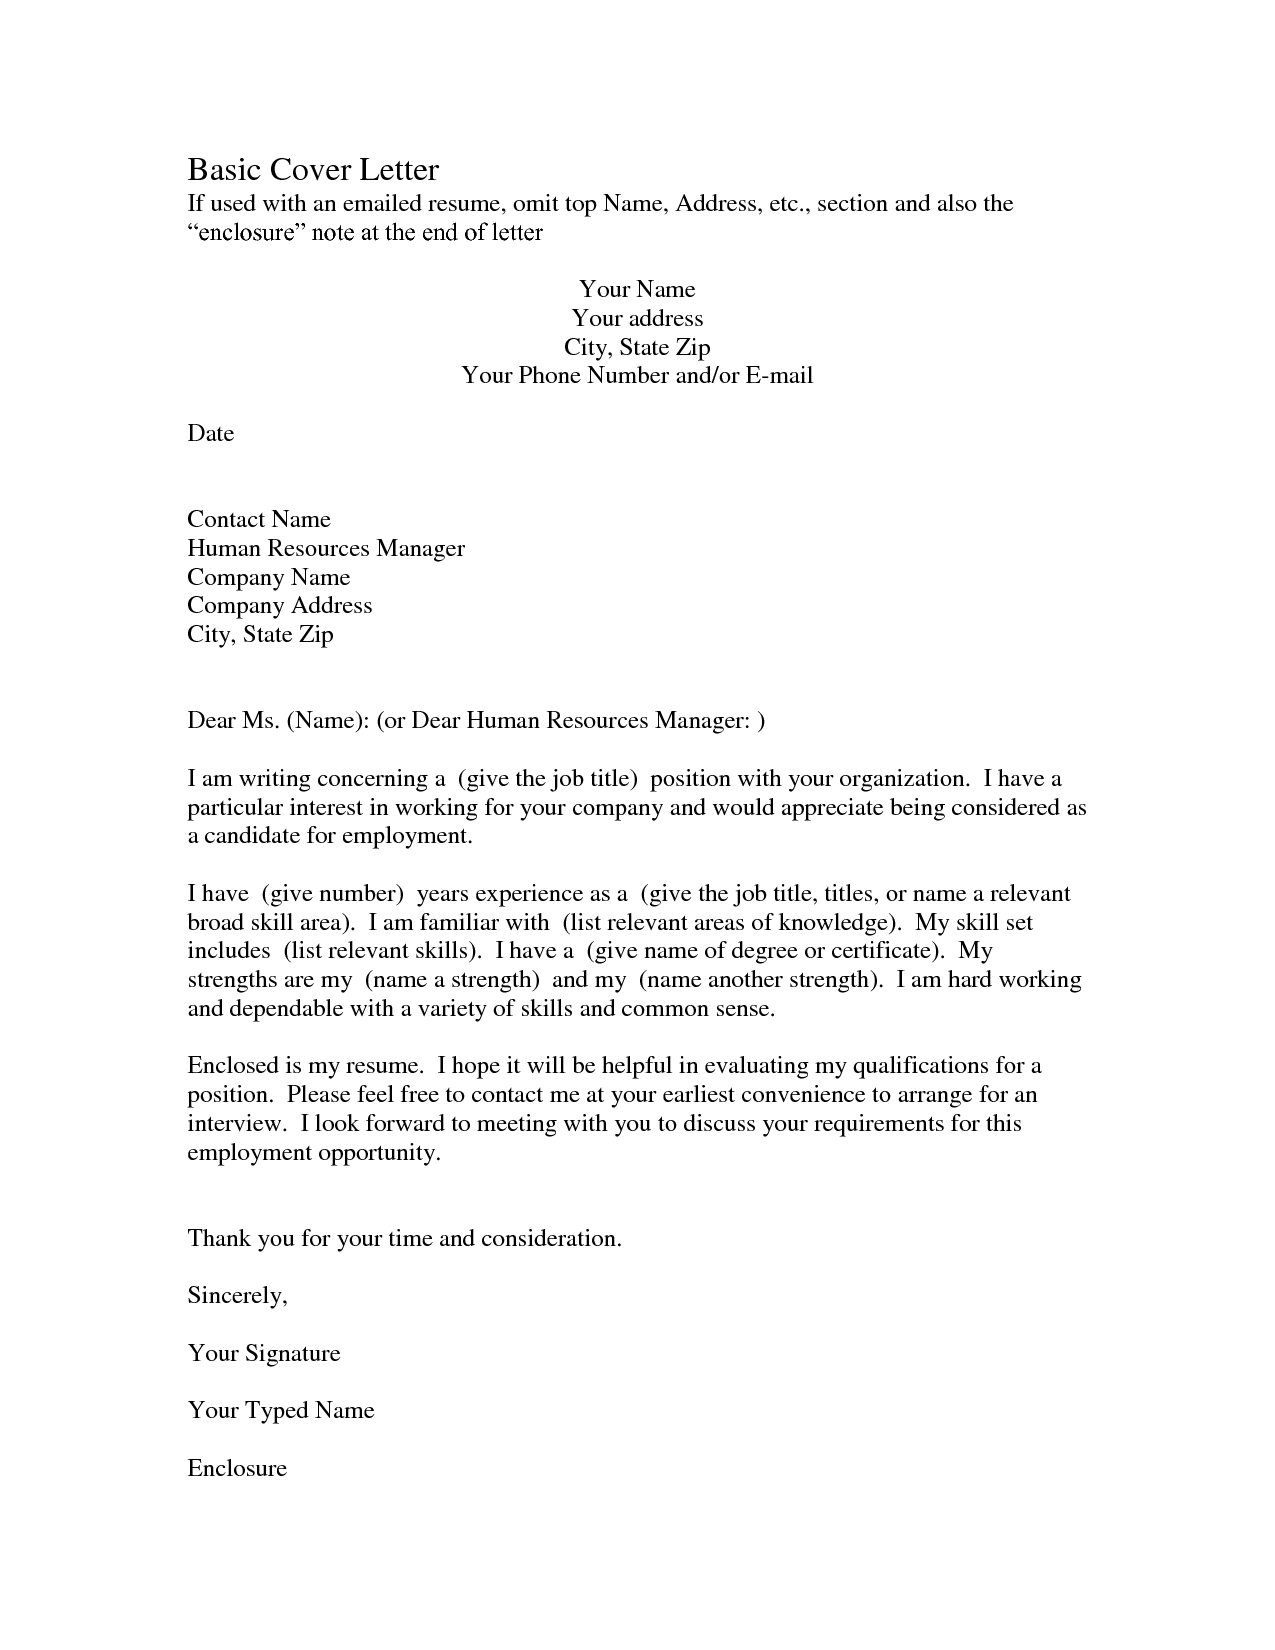 general cover letter sample your choice whether to go into reasons